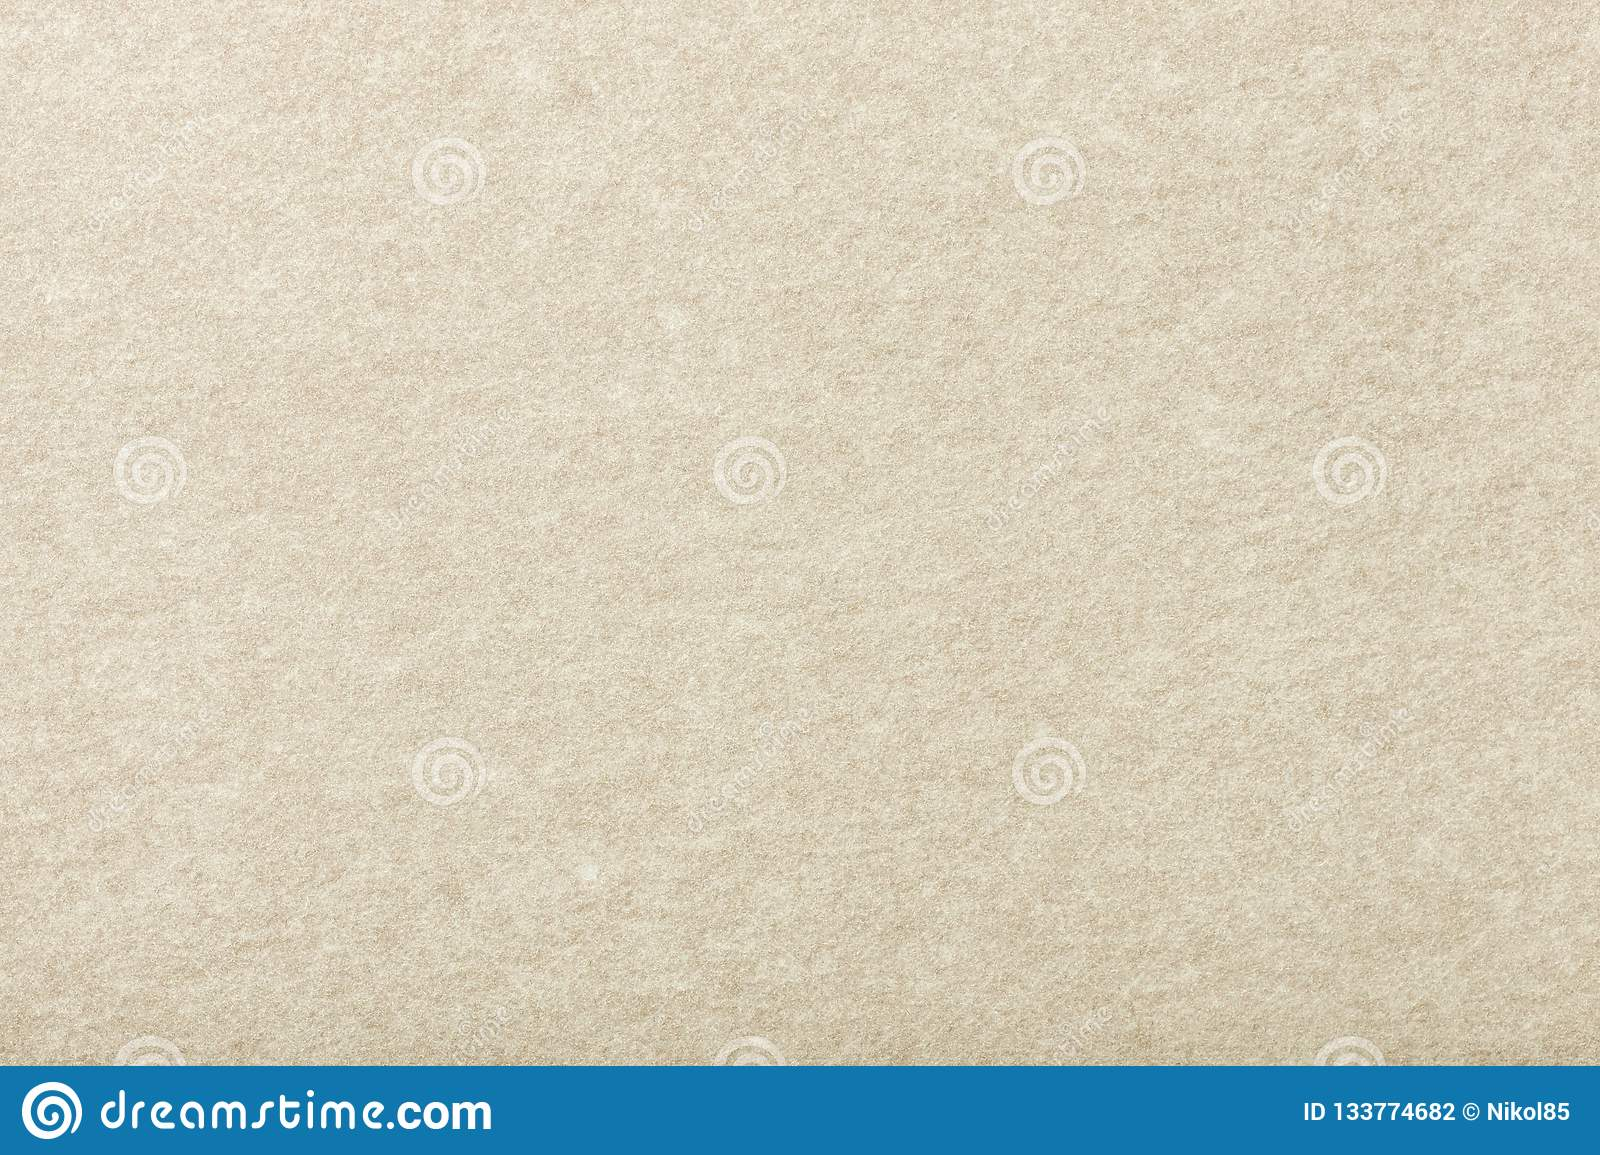 1 488 Beige Velvet Texture Photos Free Royalty Free Stock Photos From Dreamstime